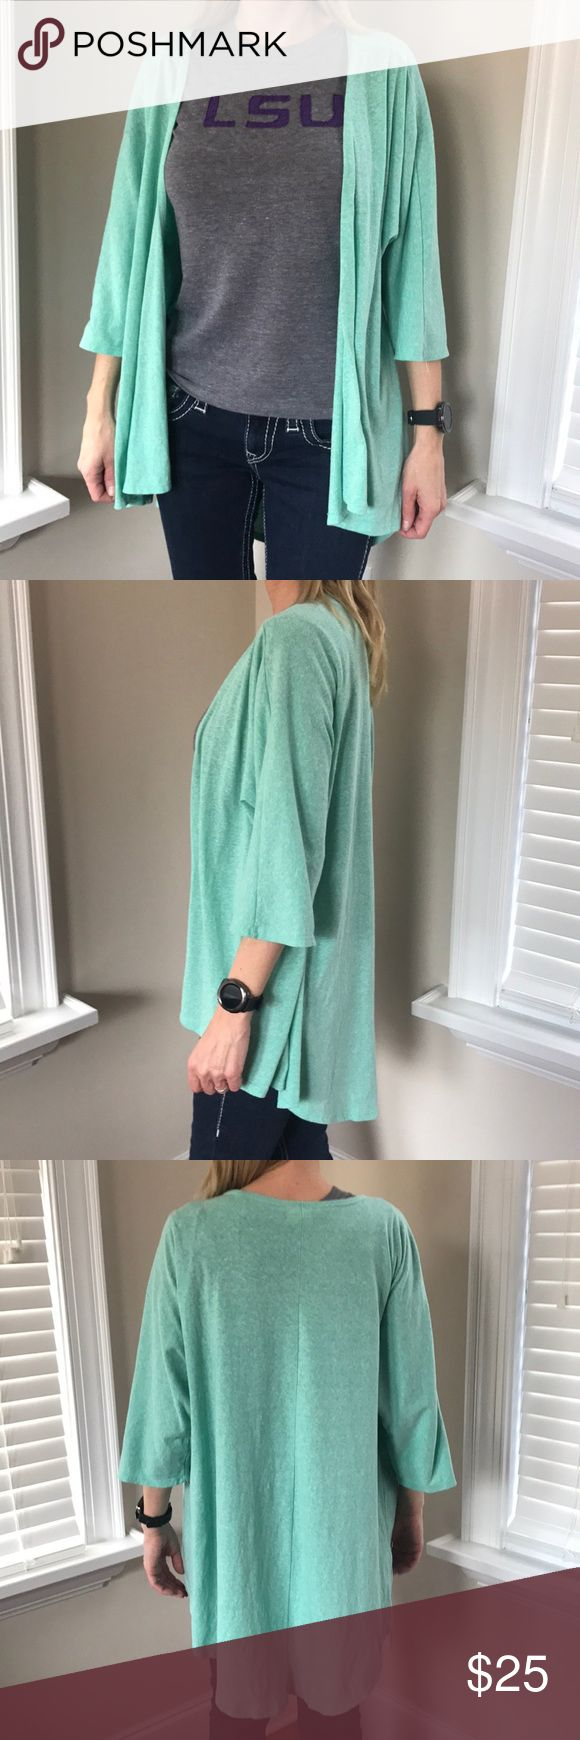 LuLaRoe oversized mint cardigan LuLaRoe cardigan  Oversized Mint blue color Lower in the back (low to mid thigh) No flaws Size small  Bundle and save! Prices are always negotiable 💜💙 LuLaRoe Sweaters Cardigans